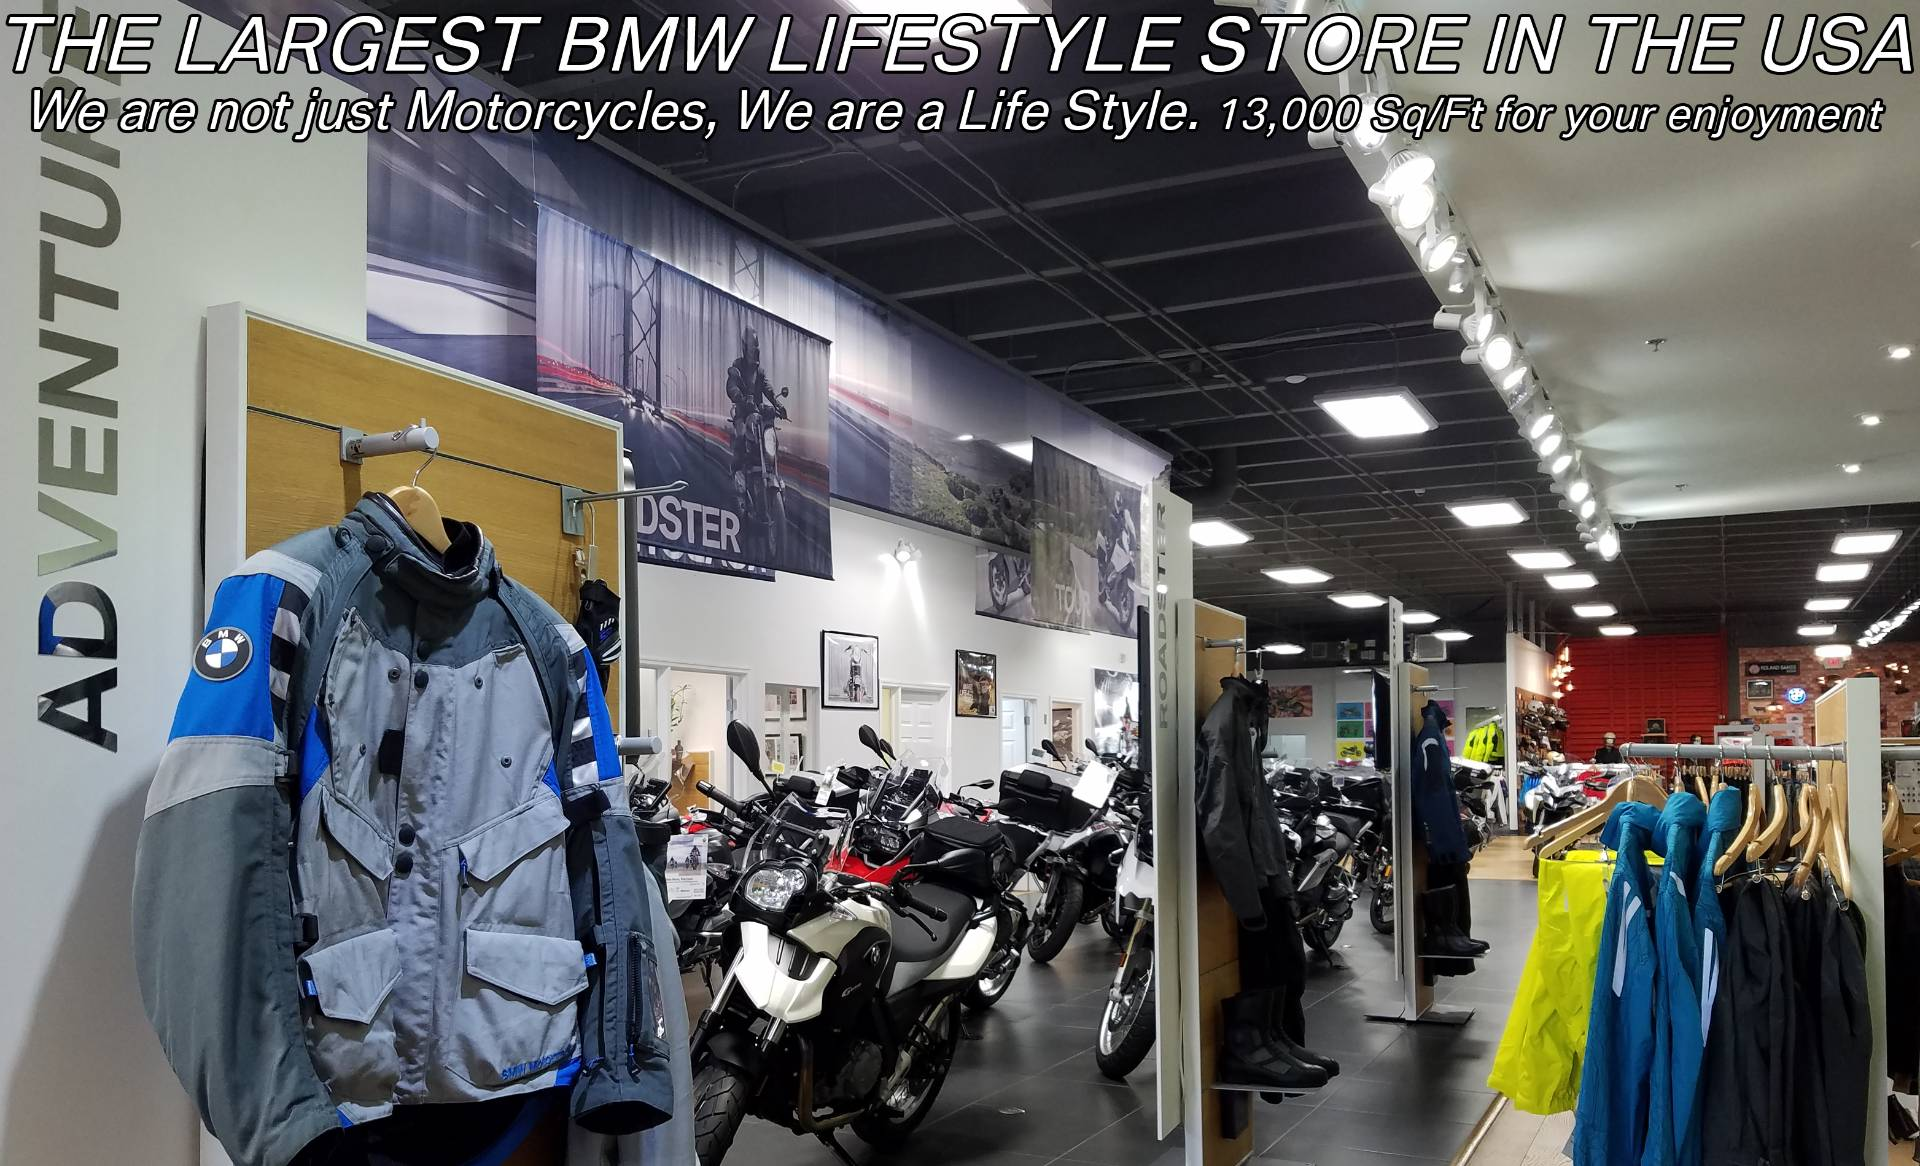 New 2019 BMW R 1250 GS for sale, New BMW R 1250GS, BMW R1250GS for sale, 1250GS, R1250GS, BMW Motorcycles of Miami, Motorcycles of Miami. Motorcycles Miami - Photo 62